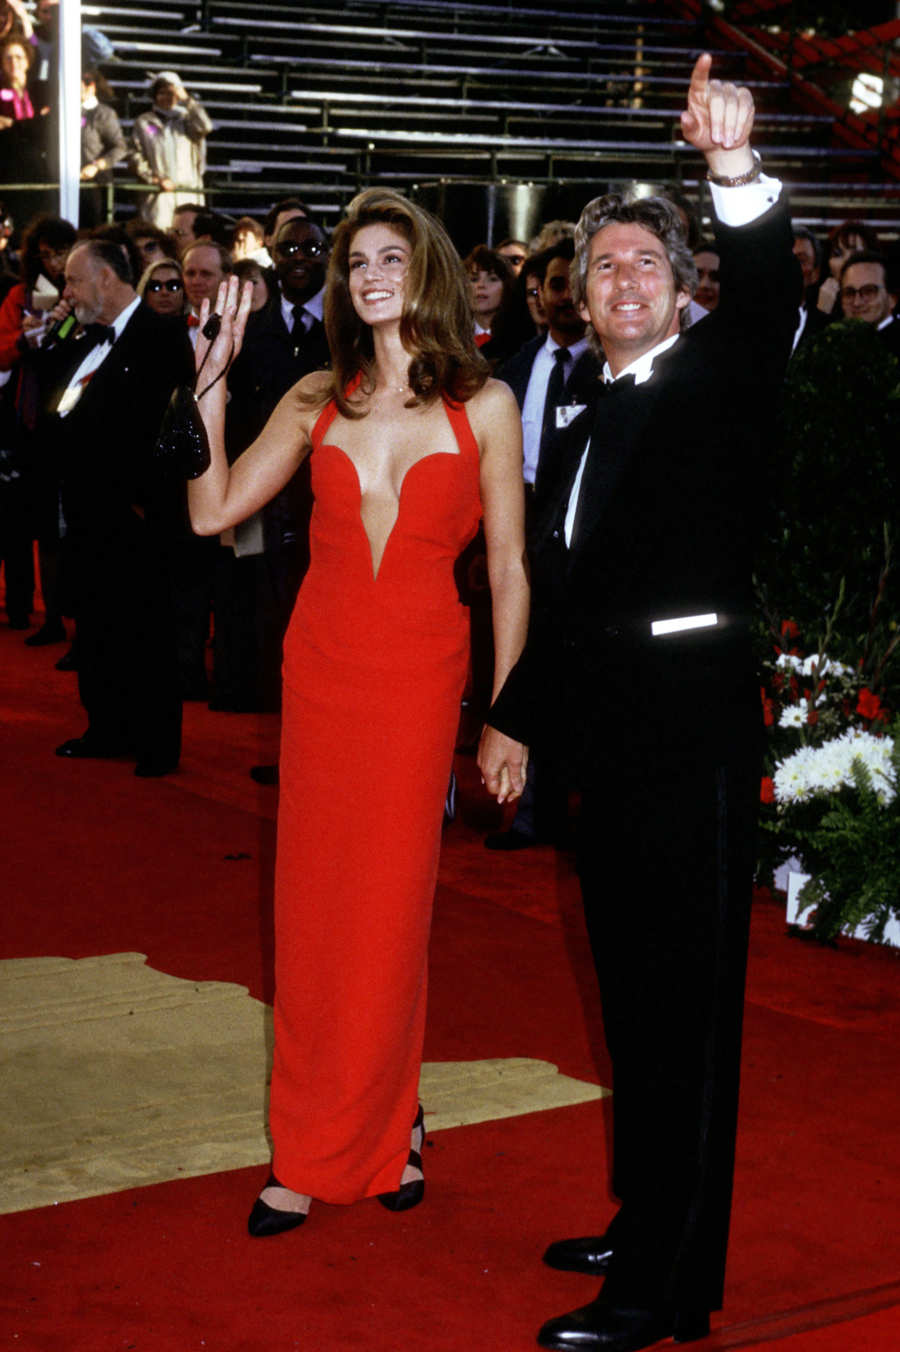 CINDY CRAWFORD, OSCARS 1991 IN VERSACE